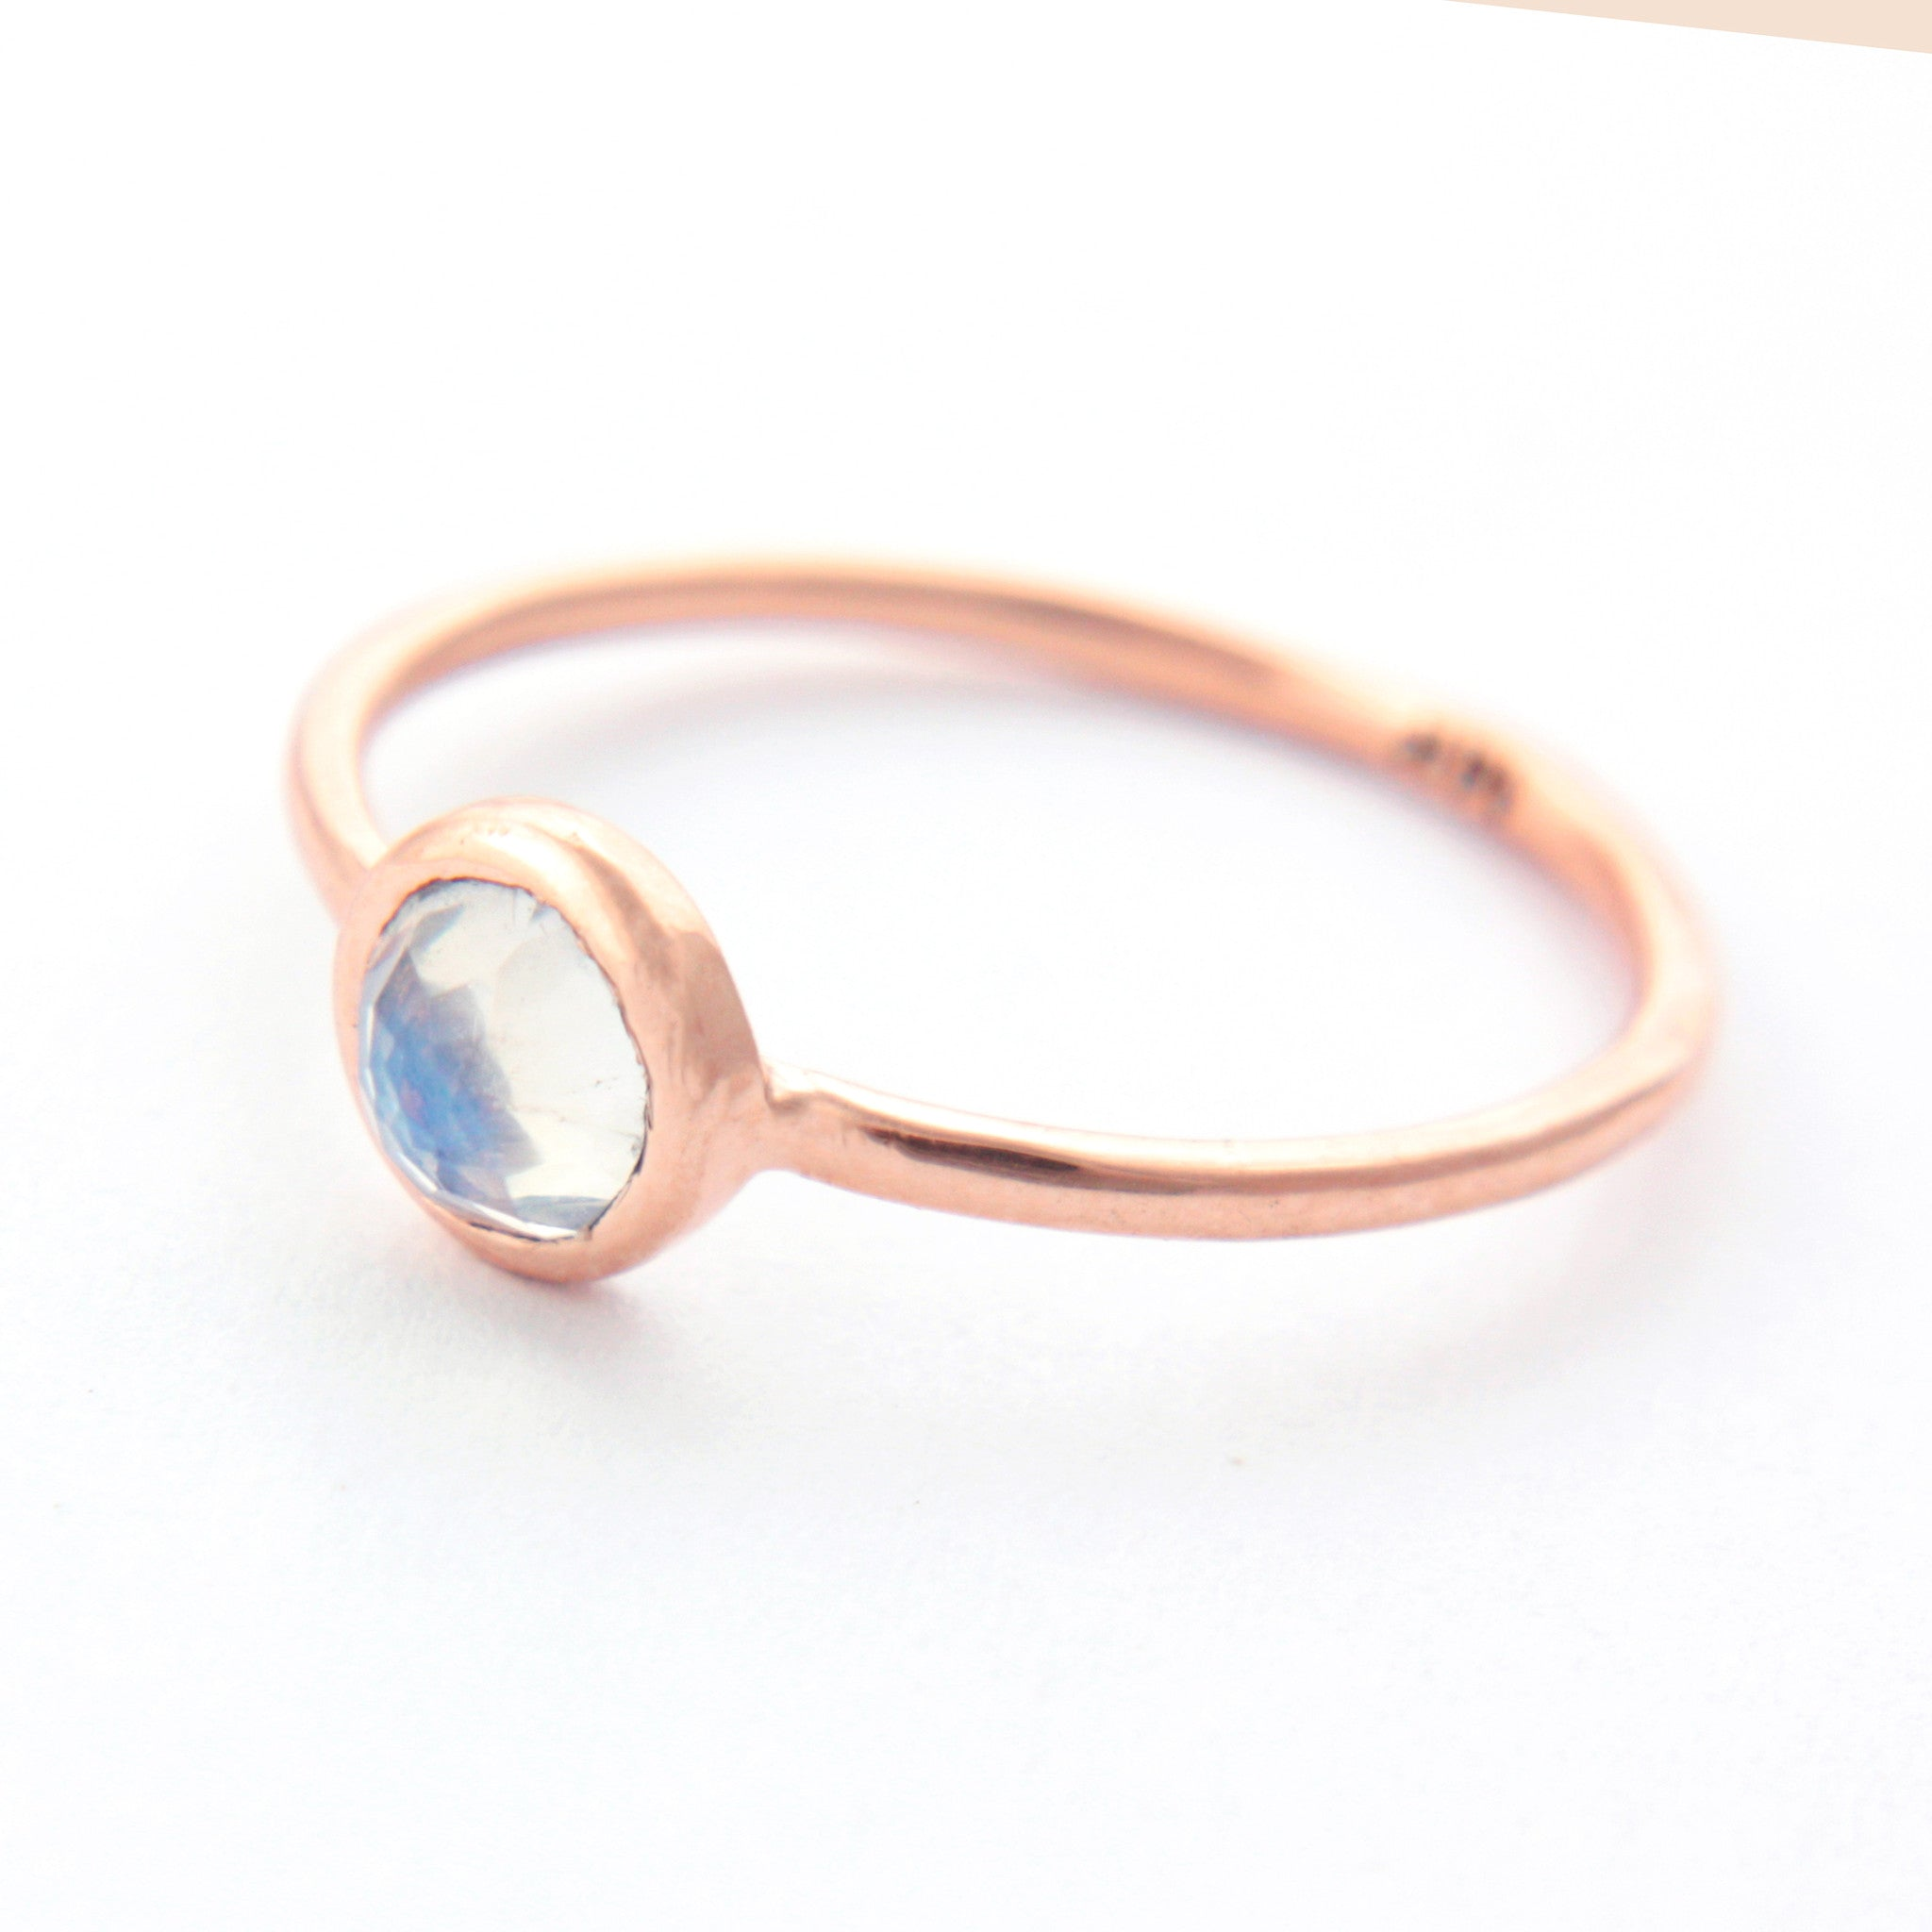 handmade silver rings moonstone india elegance sterling shipping today watches ring jewelry free product overstock rainbow